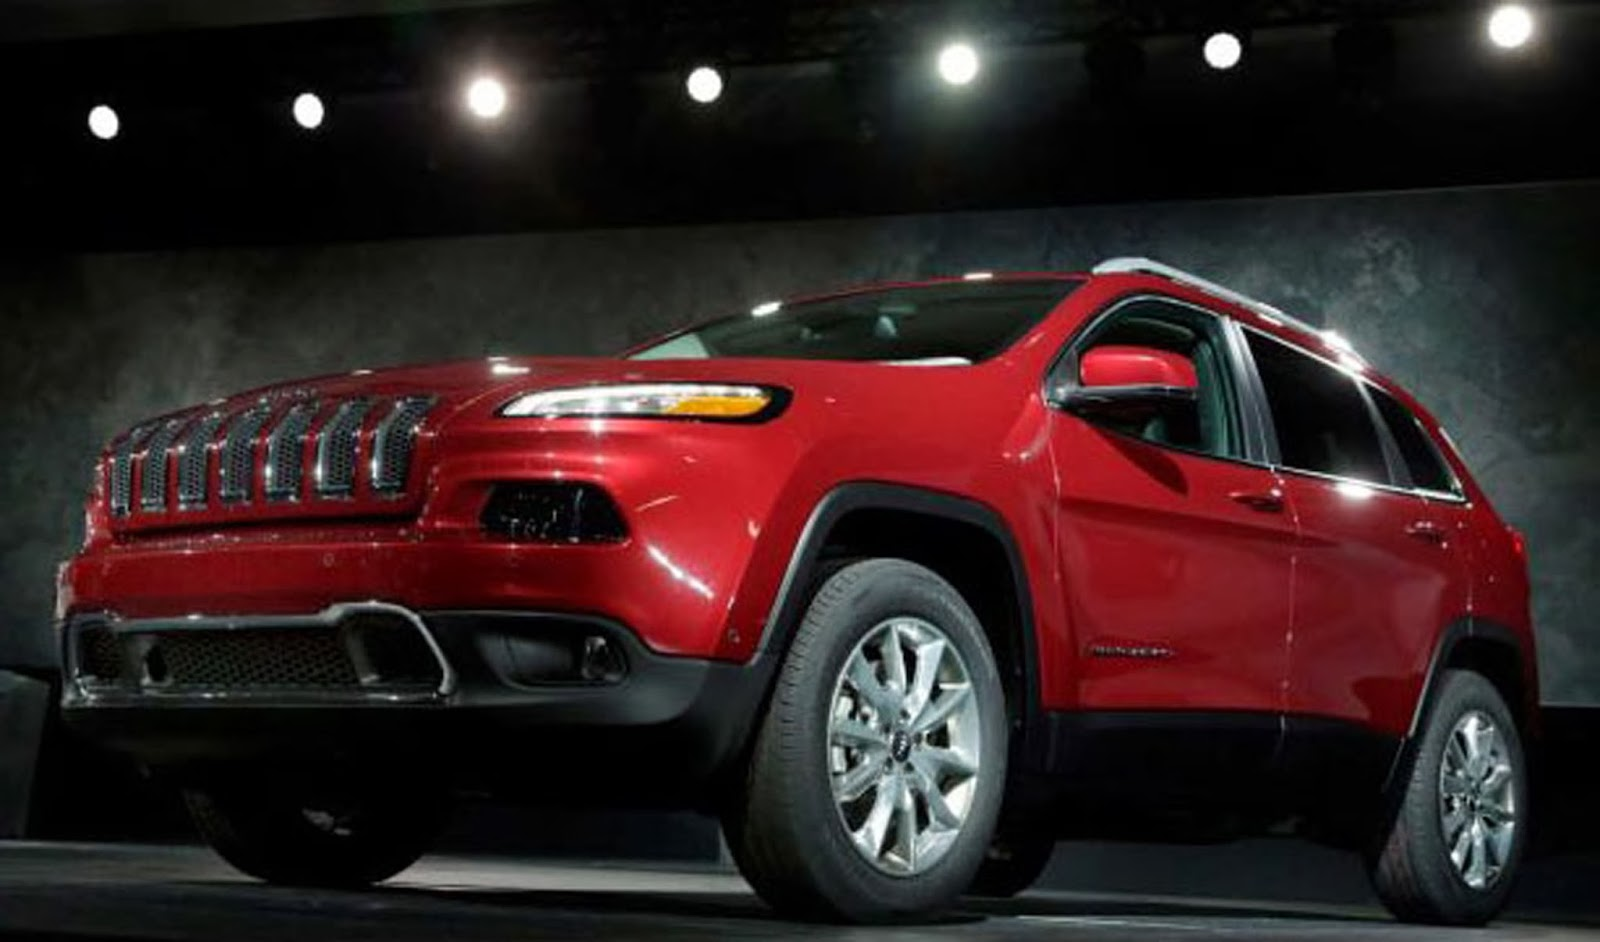 jeep cherokee 2014 jeep cherokee new jeep cherokee 2014 jeep. Cars Review. Best American Auto & Cars Review